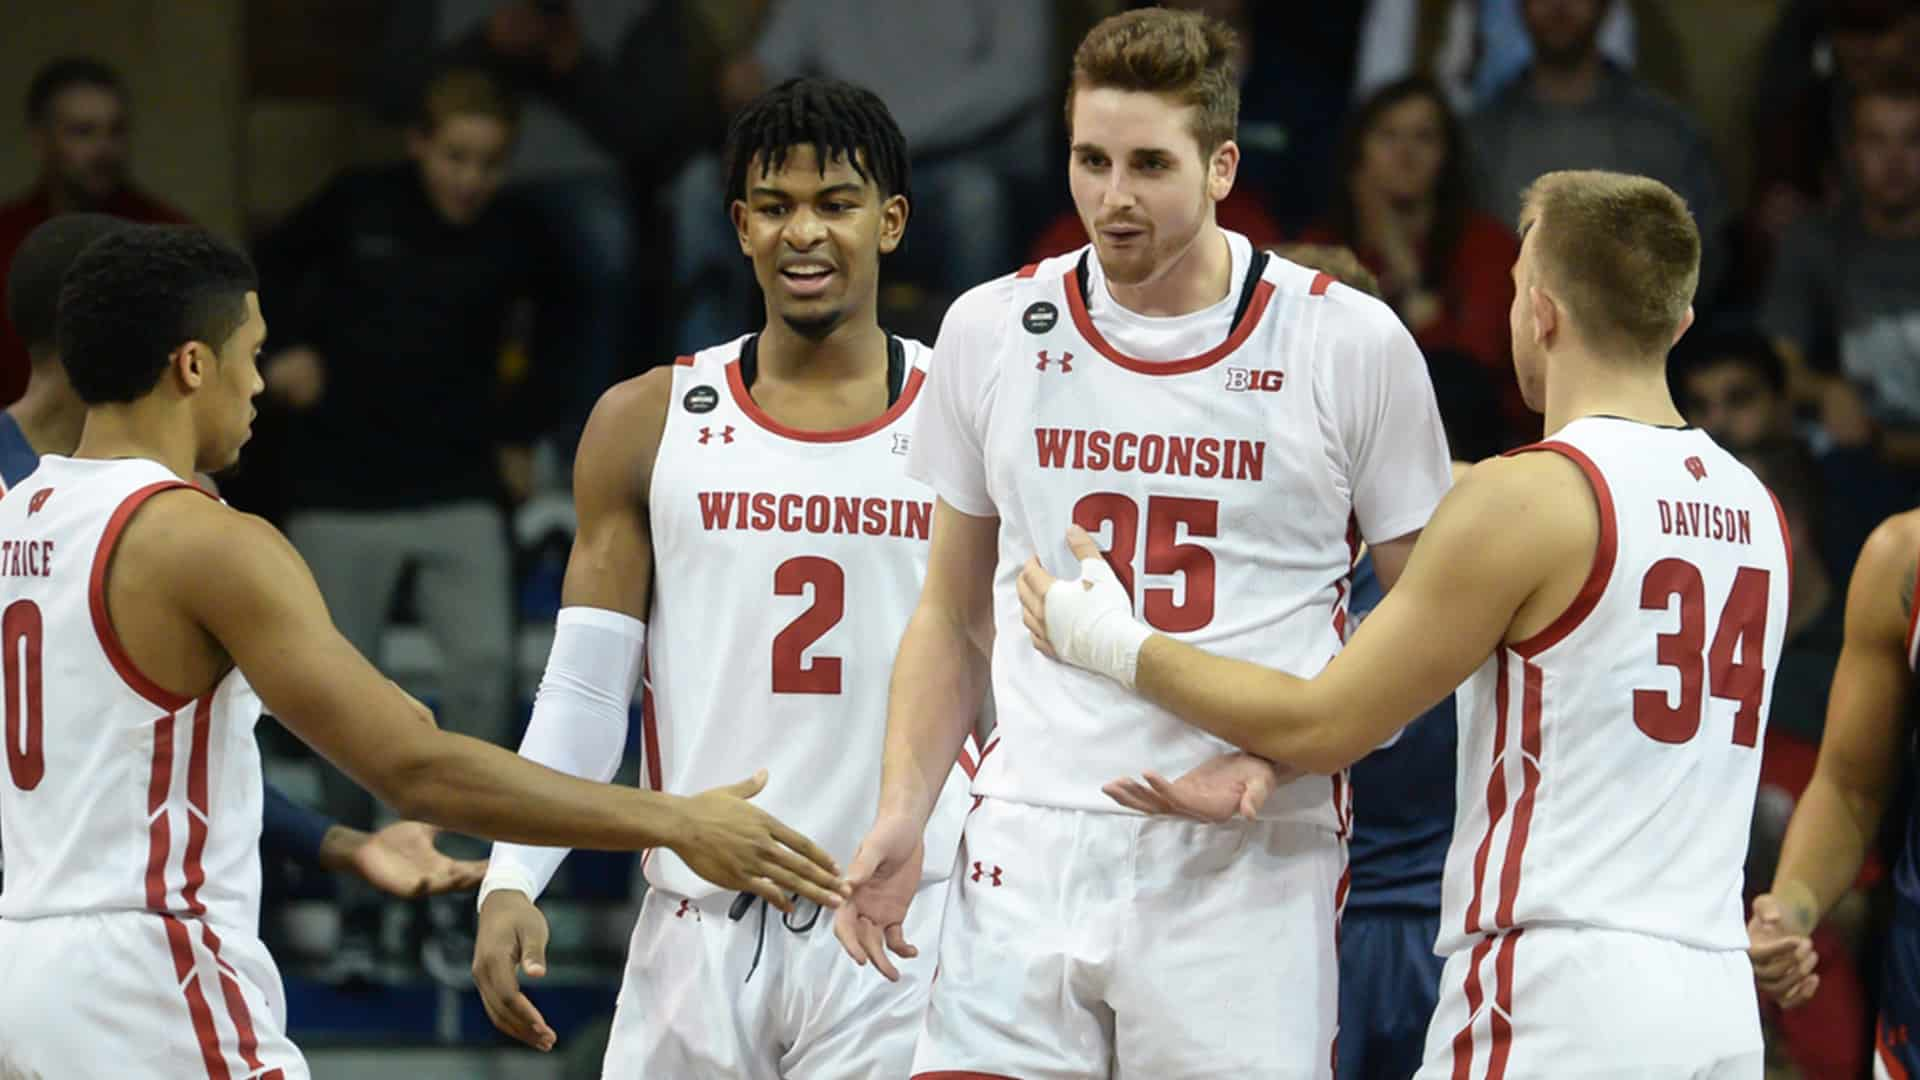 Nate Reuvers - Wisconsin - March Madness